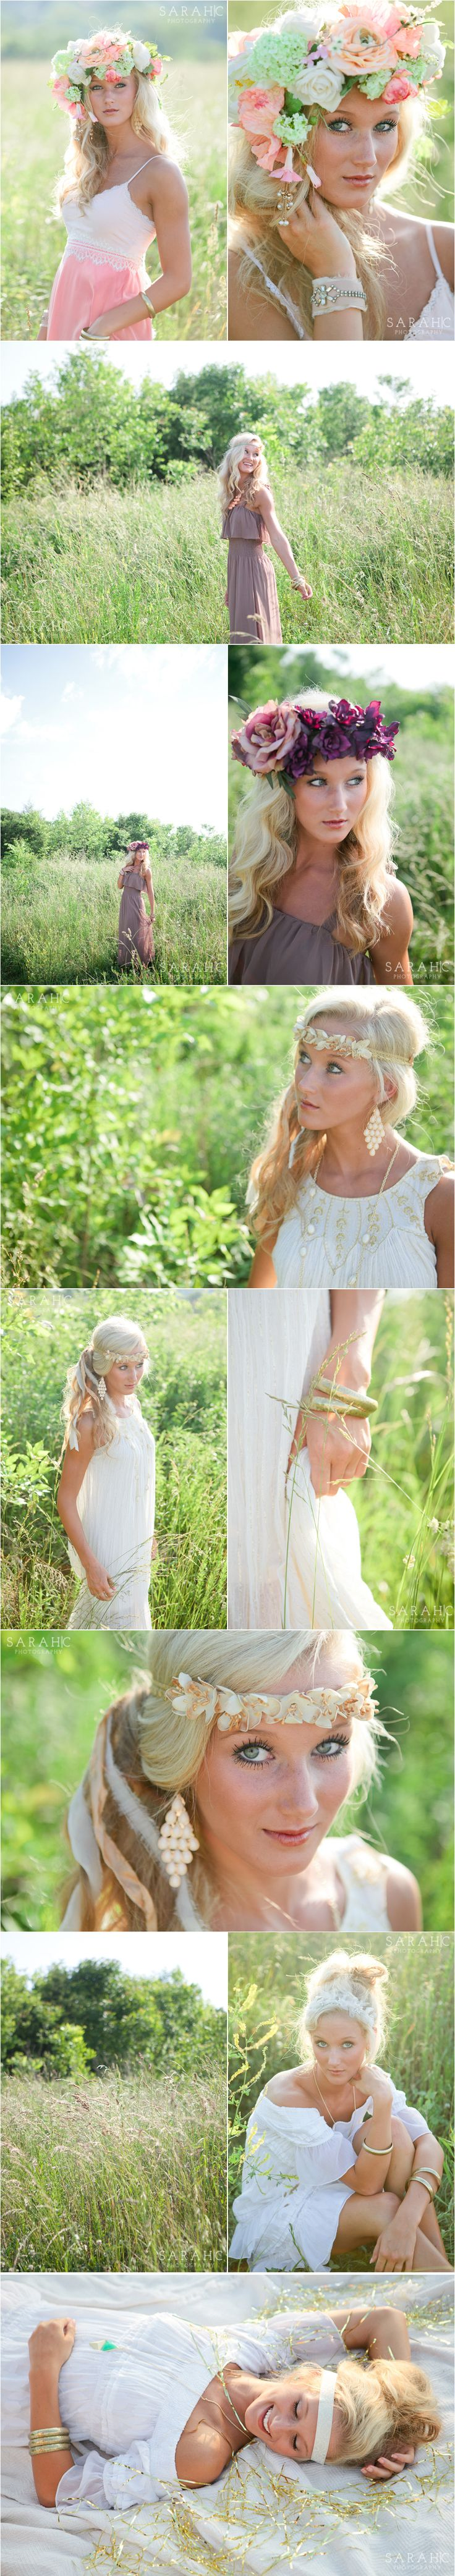 Midsummer Night's Dream Styled Photo Session   Senior Portraits in Knoxville   Sarah C. Photography   Voted Knoxville's Best Photographer   Family, Senior and Wedding Photography